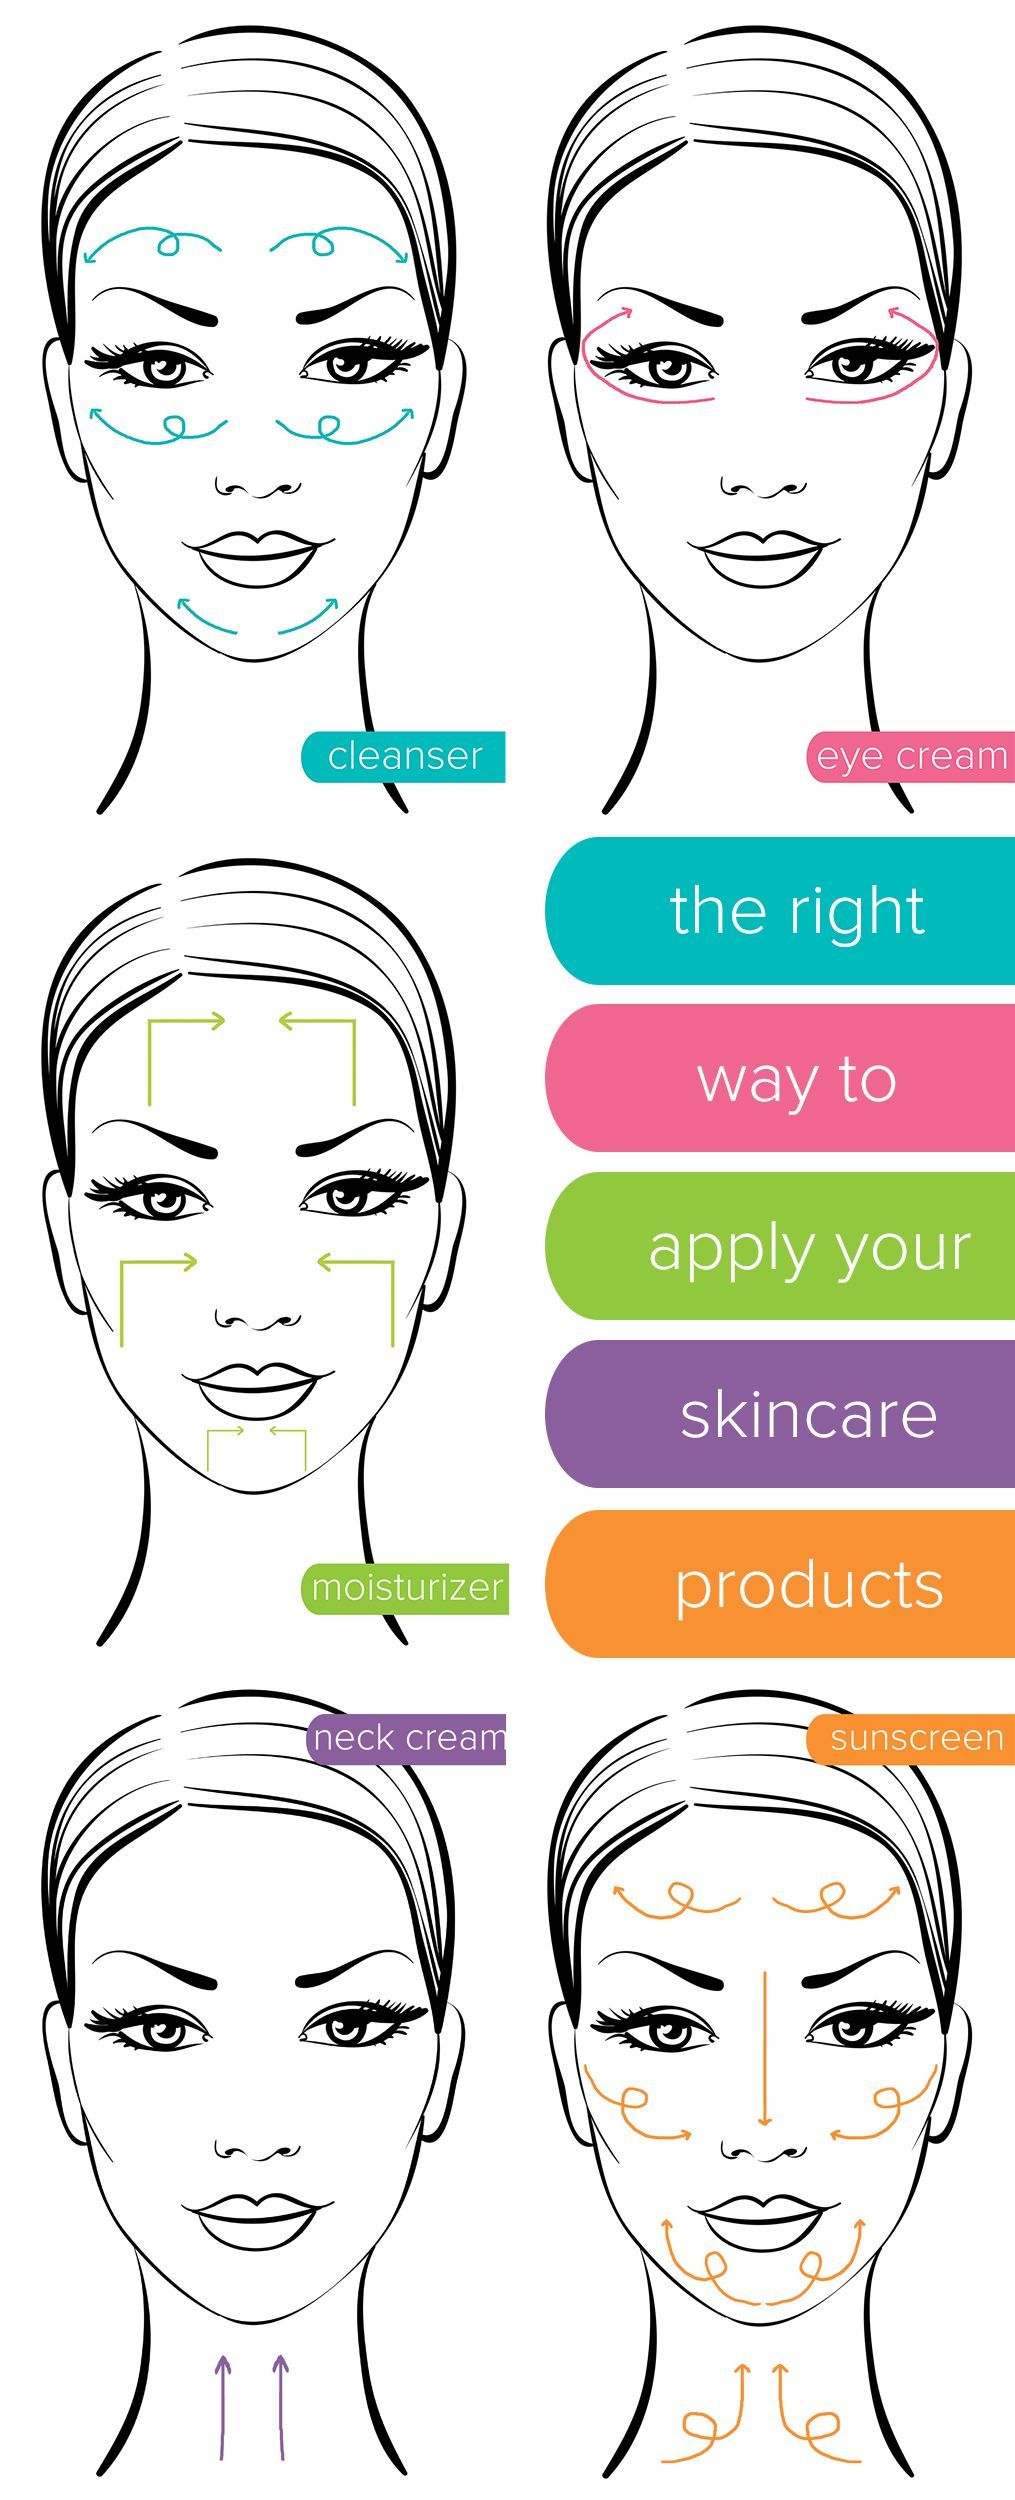 Turns Out How You Apply Your Skincare Products Can Make A Big Difference Here S The Right Way To Put On Cleans Beauty Routines Daily Beauty Routine Skin Care